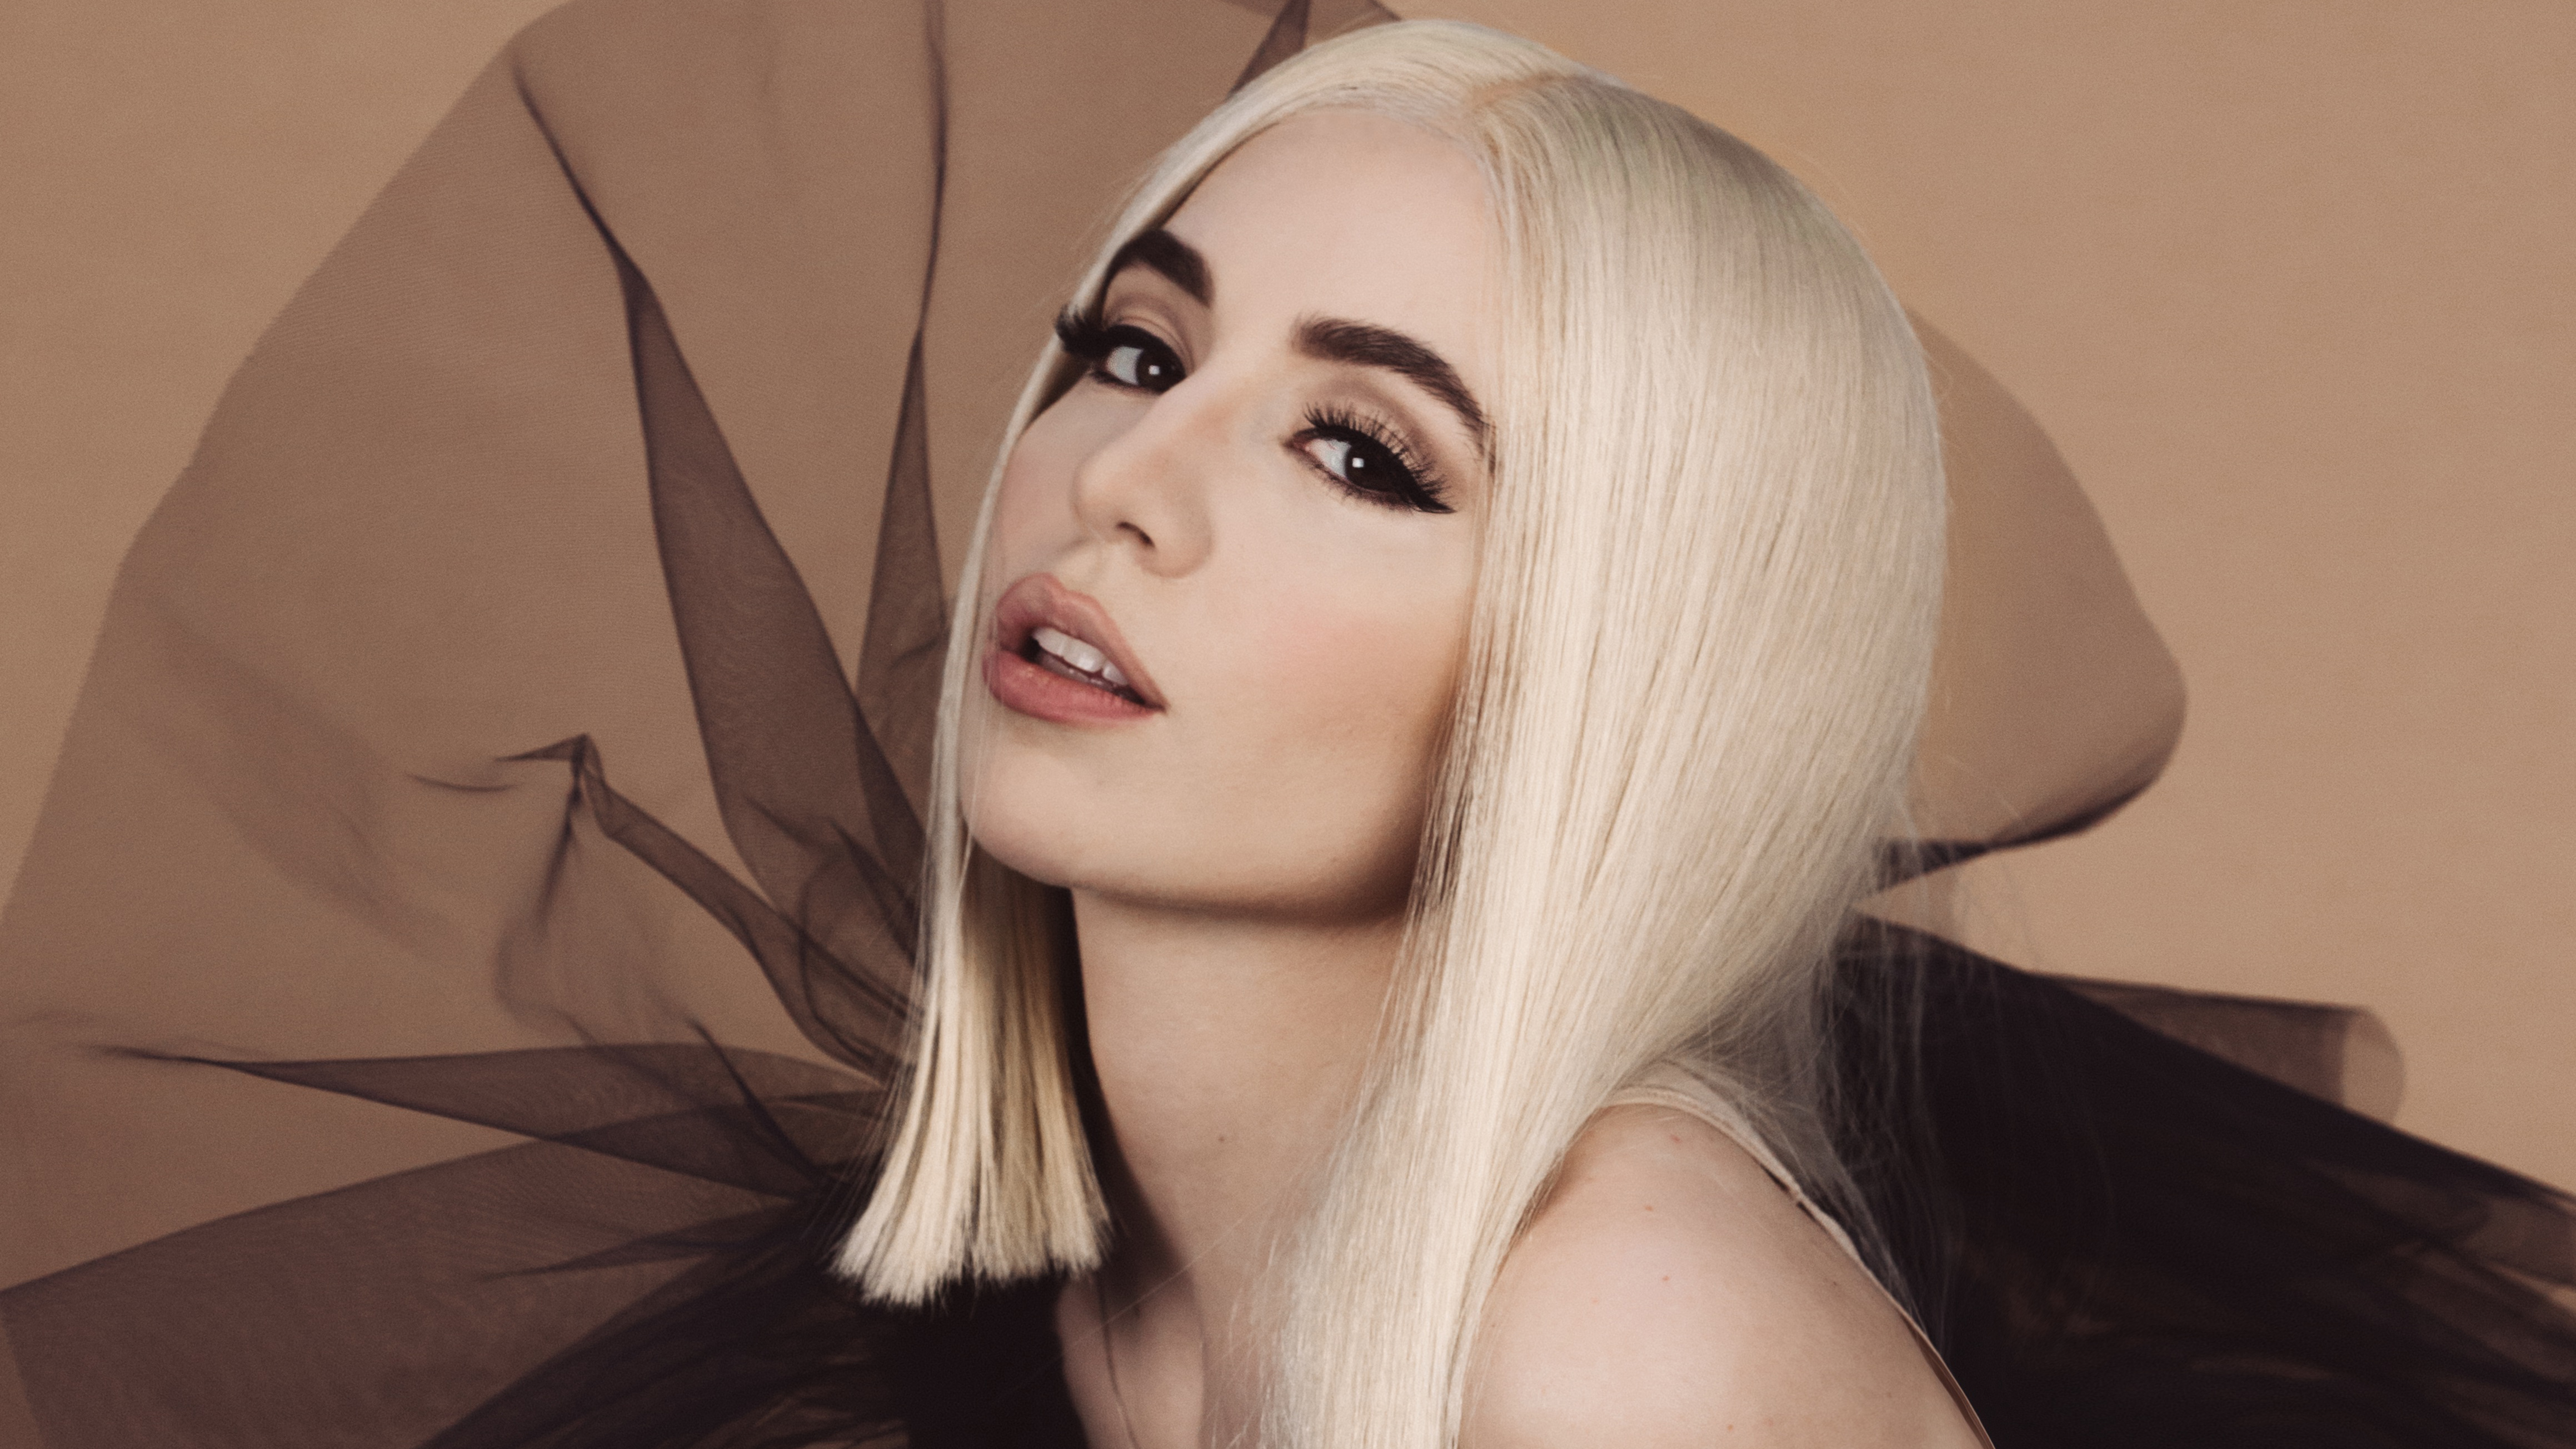 Ava Kolker Hd Wallpapers: Ava Max, HD Music, 4k Wallpapers, Images, Backgrounds